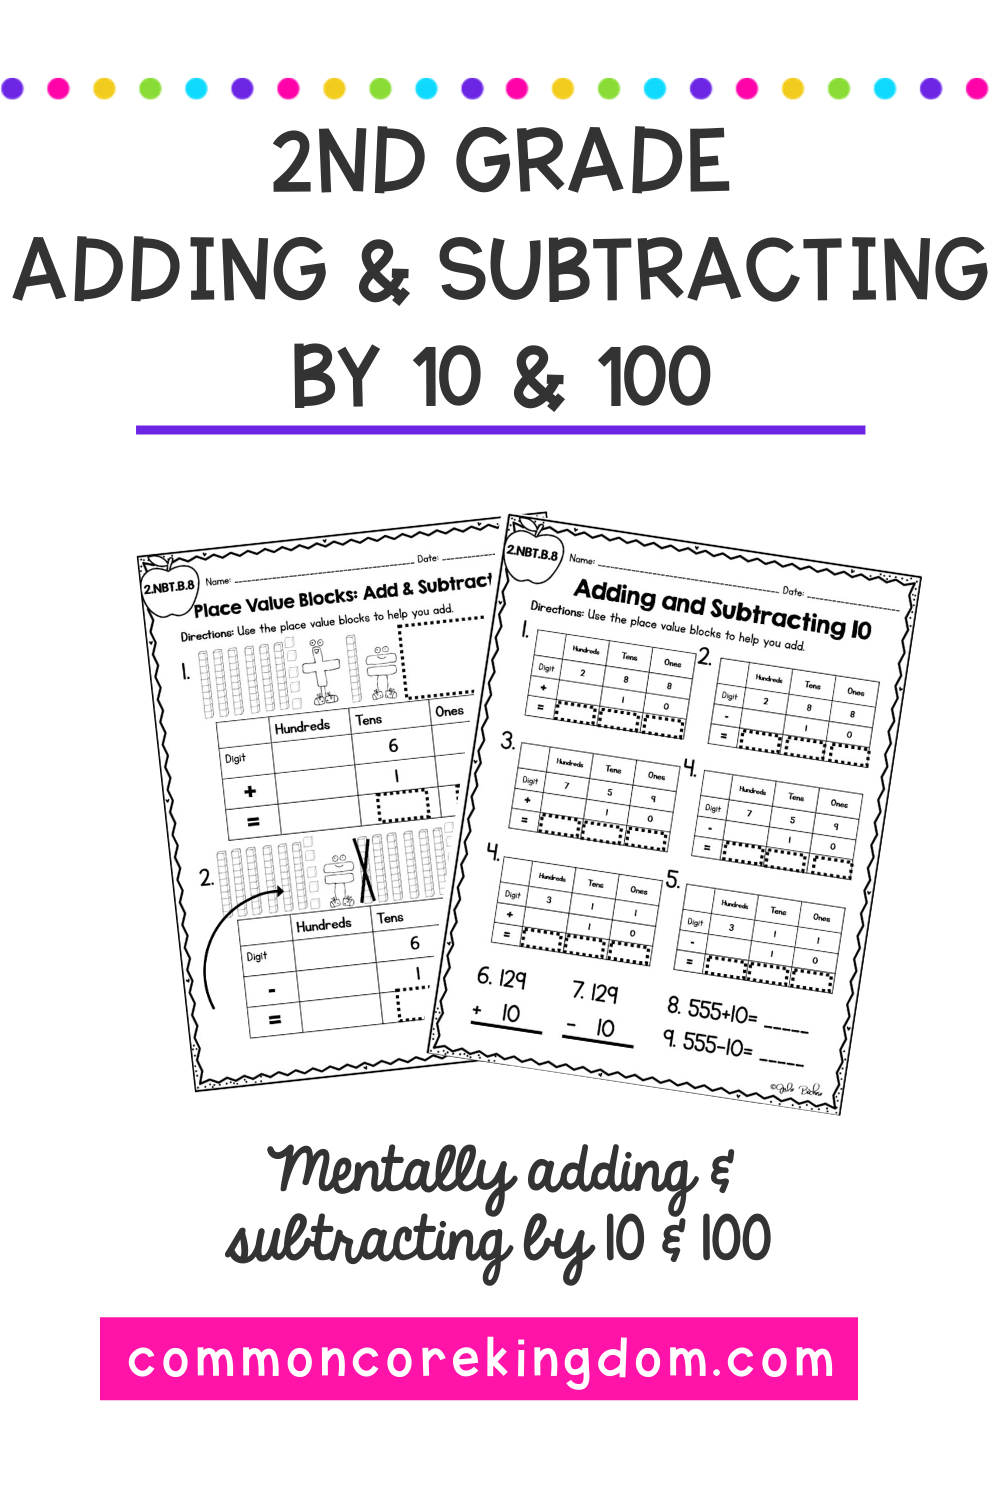 Add And Subtract 10 And 100 2nd Grade 2 Nbt B 8 Google Slides Distance Learning Adding And Subtracting 2nd Grade Worksheets 2nd Grade Math Worksheets [ 1500 x 1000 Pixel ]